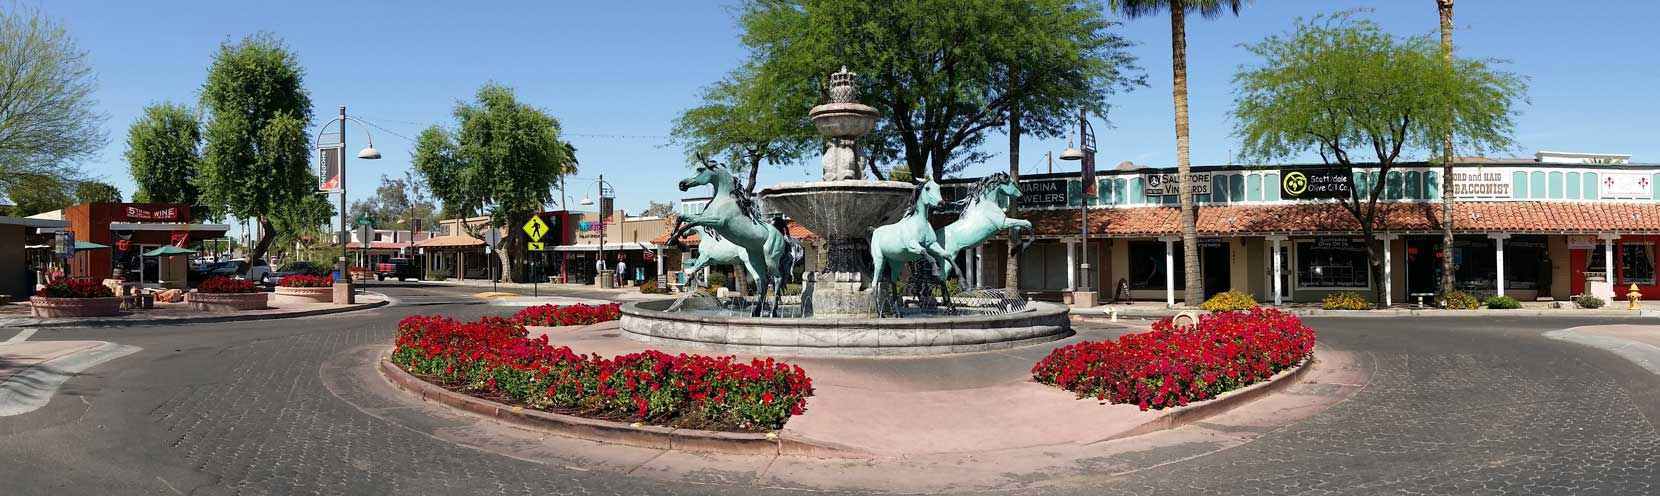 Header image of a fountain in a roundabout in downtown Scottsdale